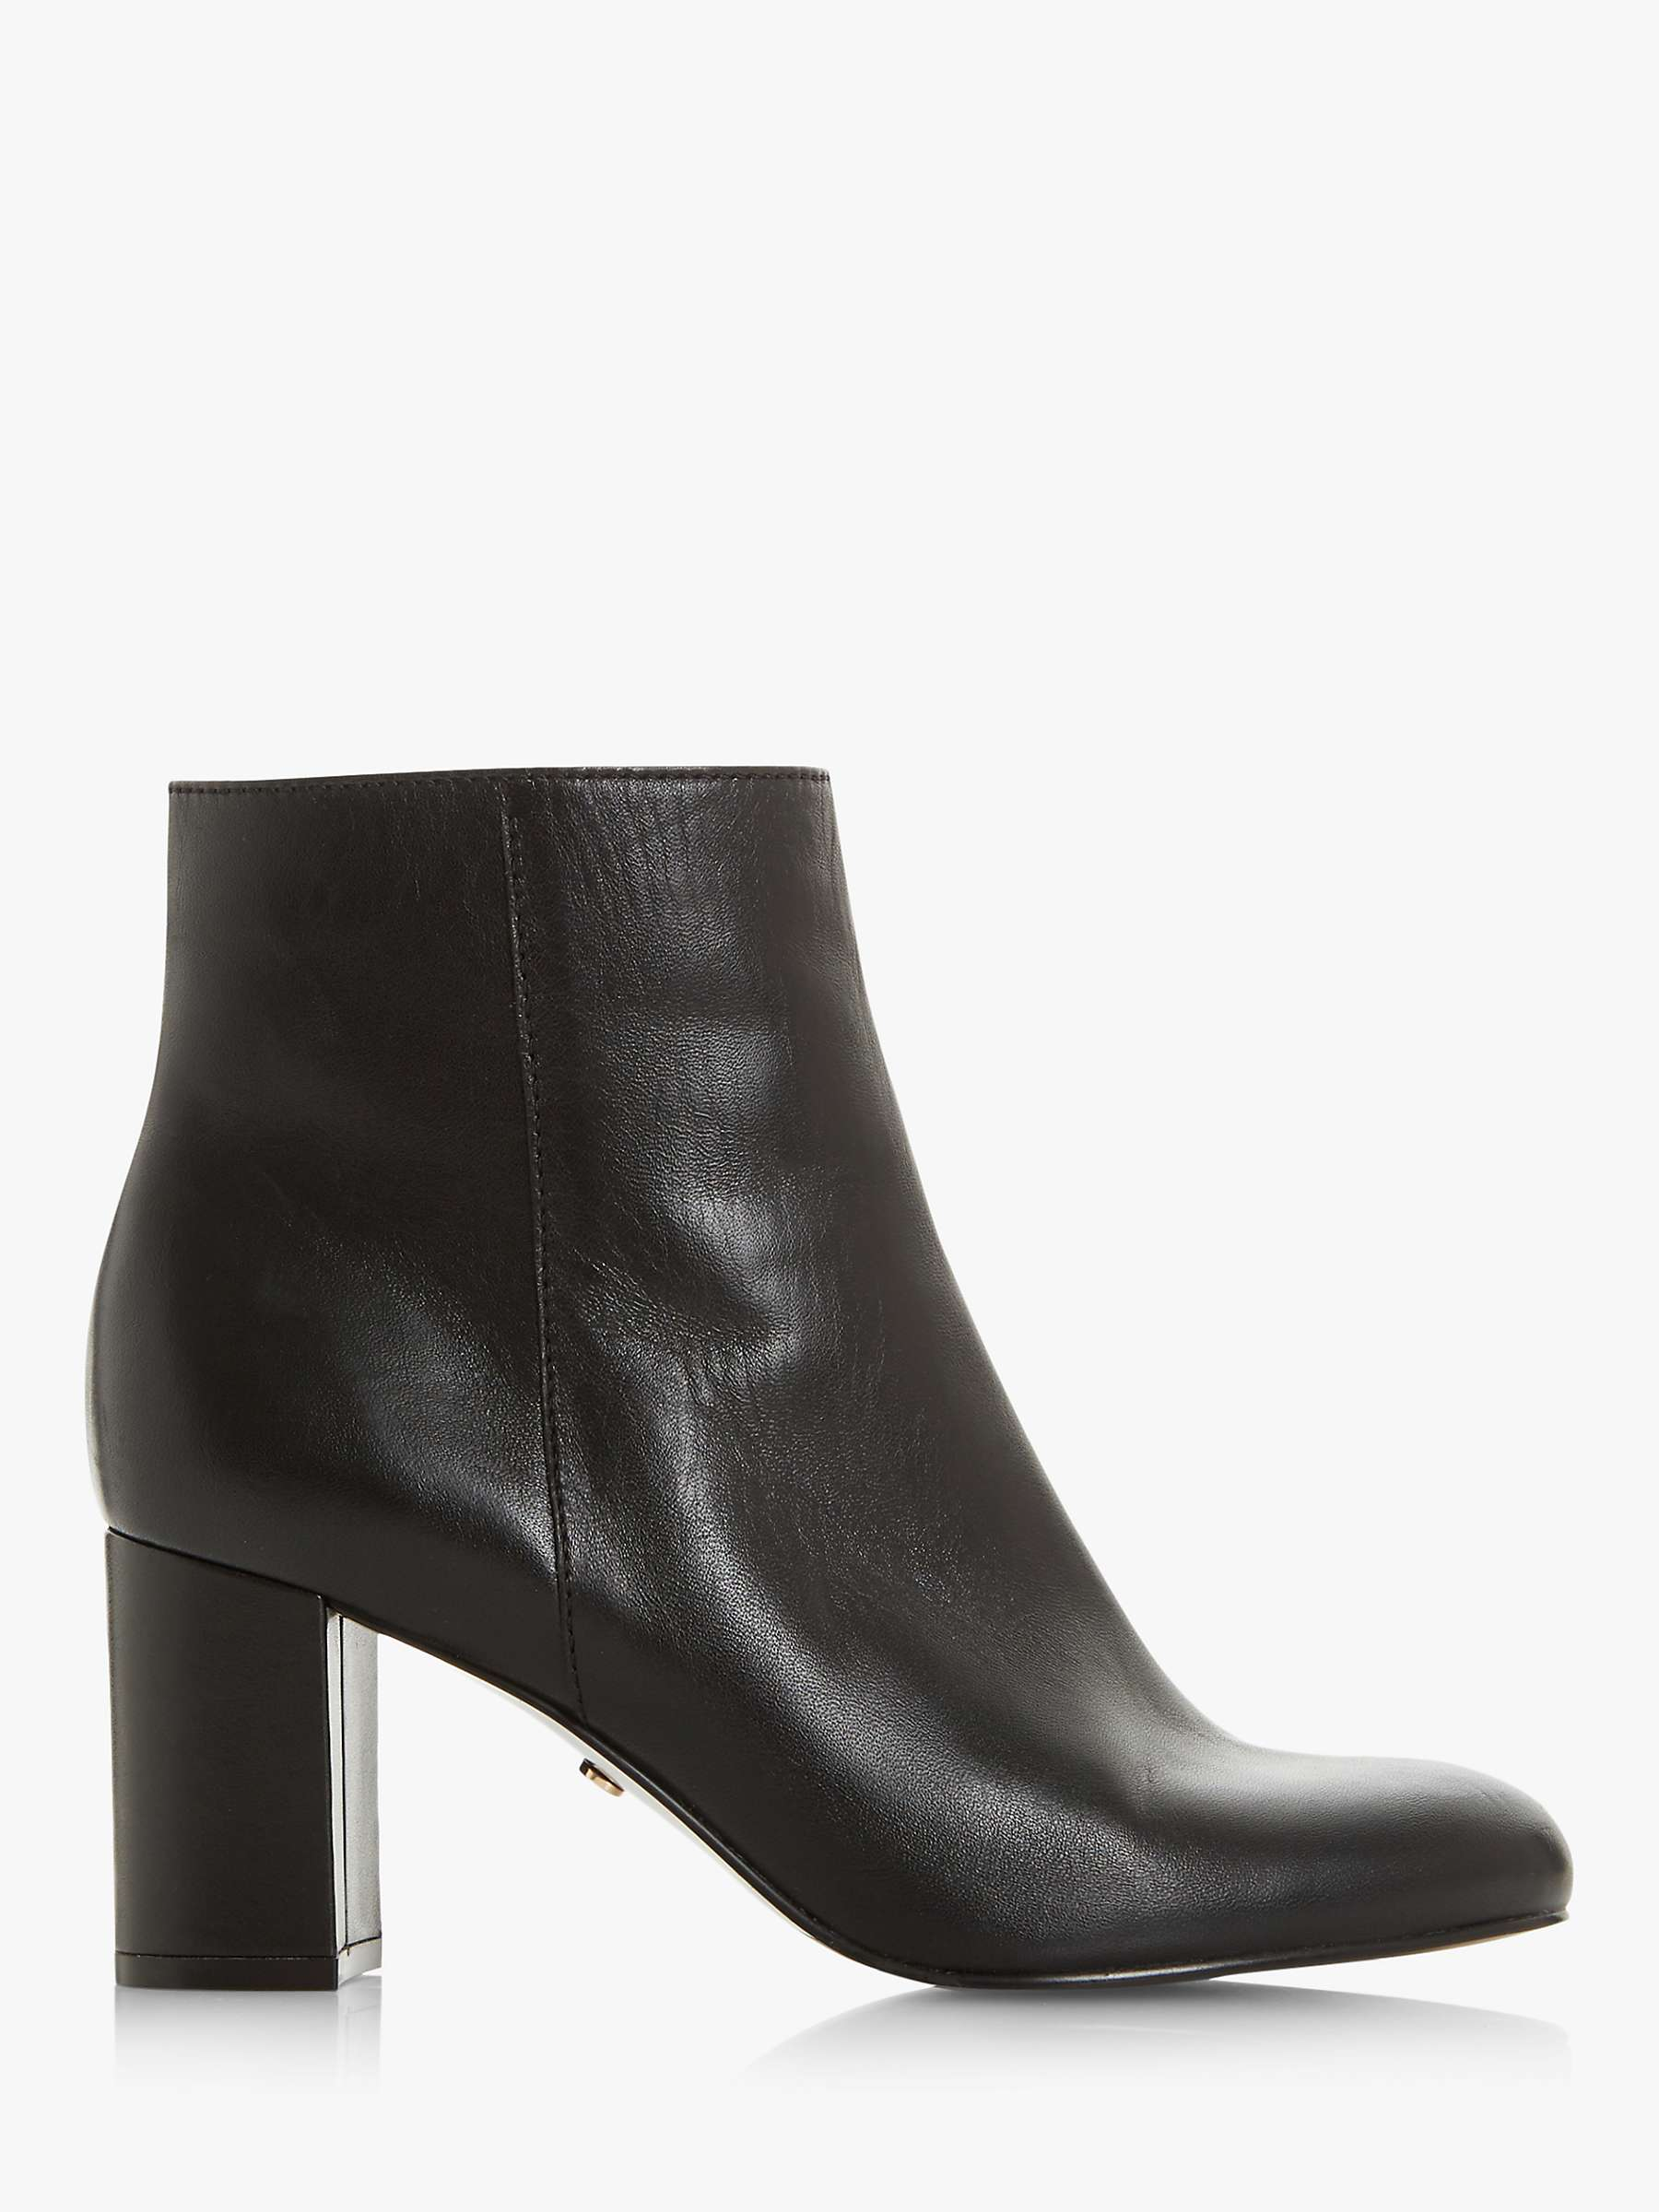 Dune Ovel T Leather Block Heel Ankle Boots, Black by John Lewis